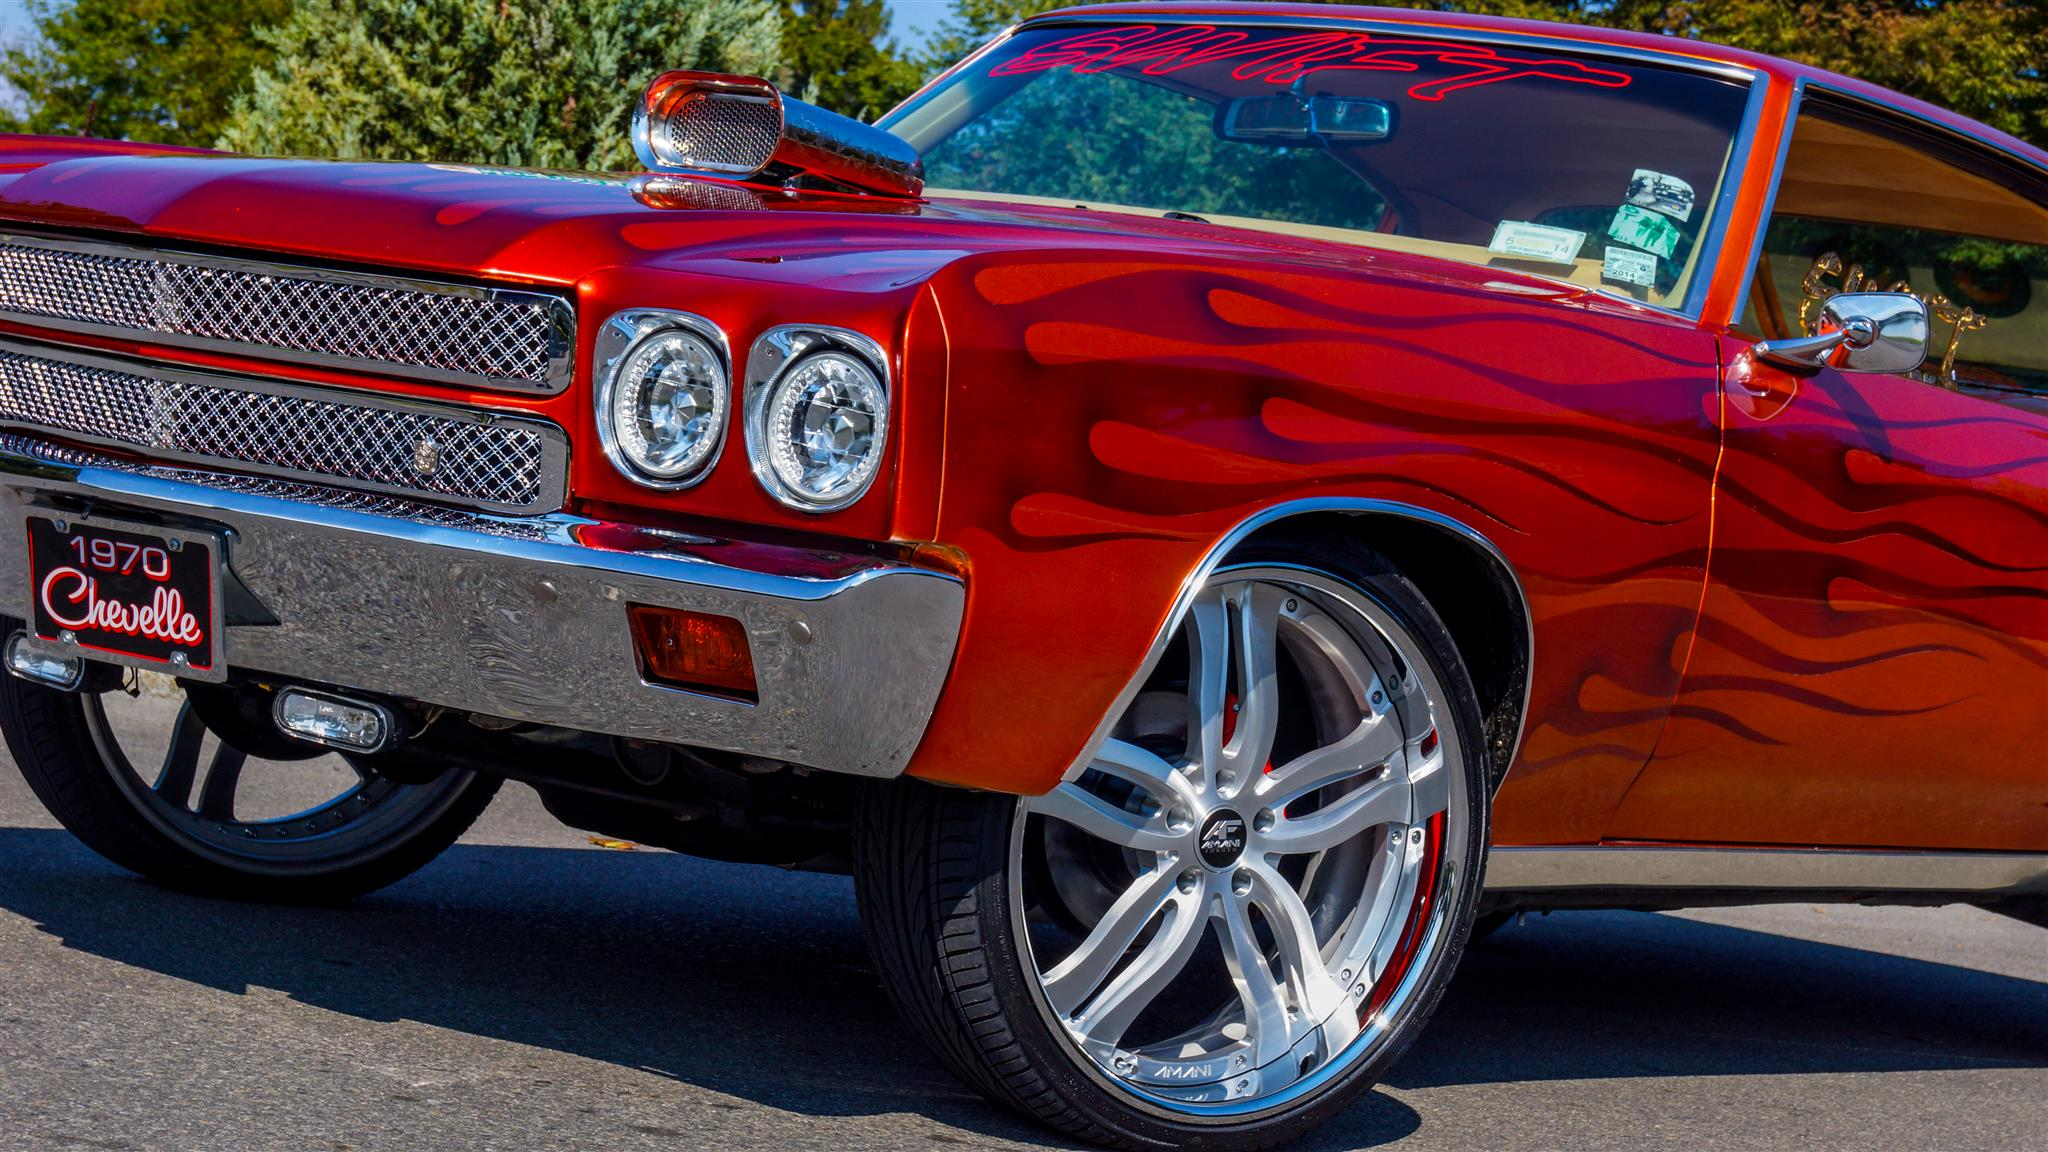 Chevrolet - Chevelle - 1970 - Wheels & Tires - Paint -  Wraps & Body - Performance